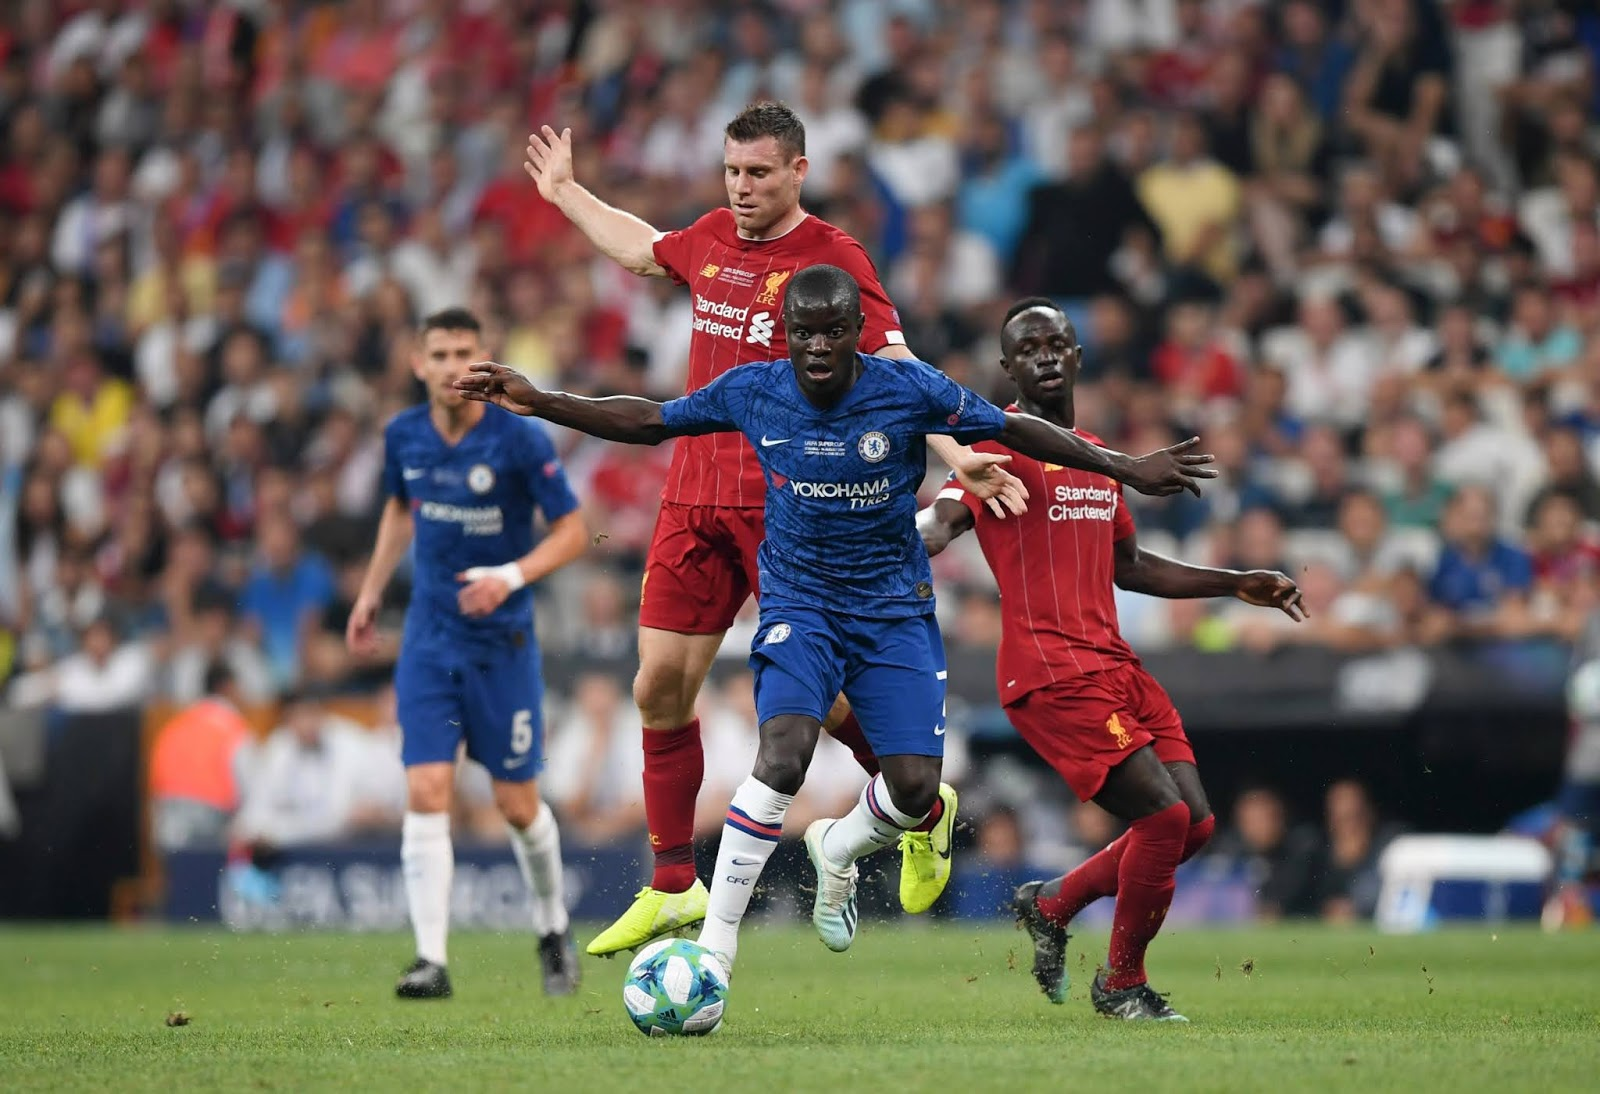 N'Golo Kante and James Milner battle for possession in midfield